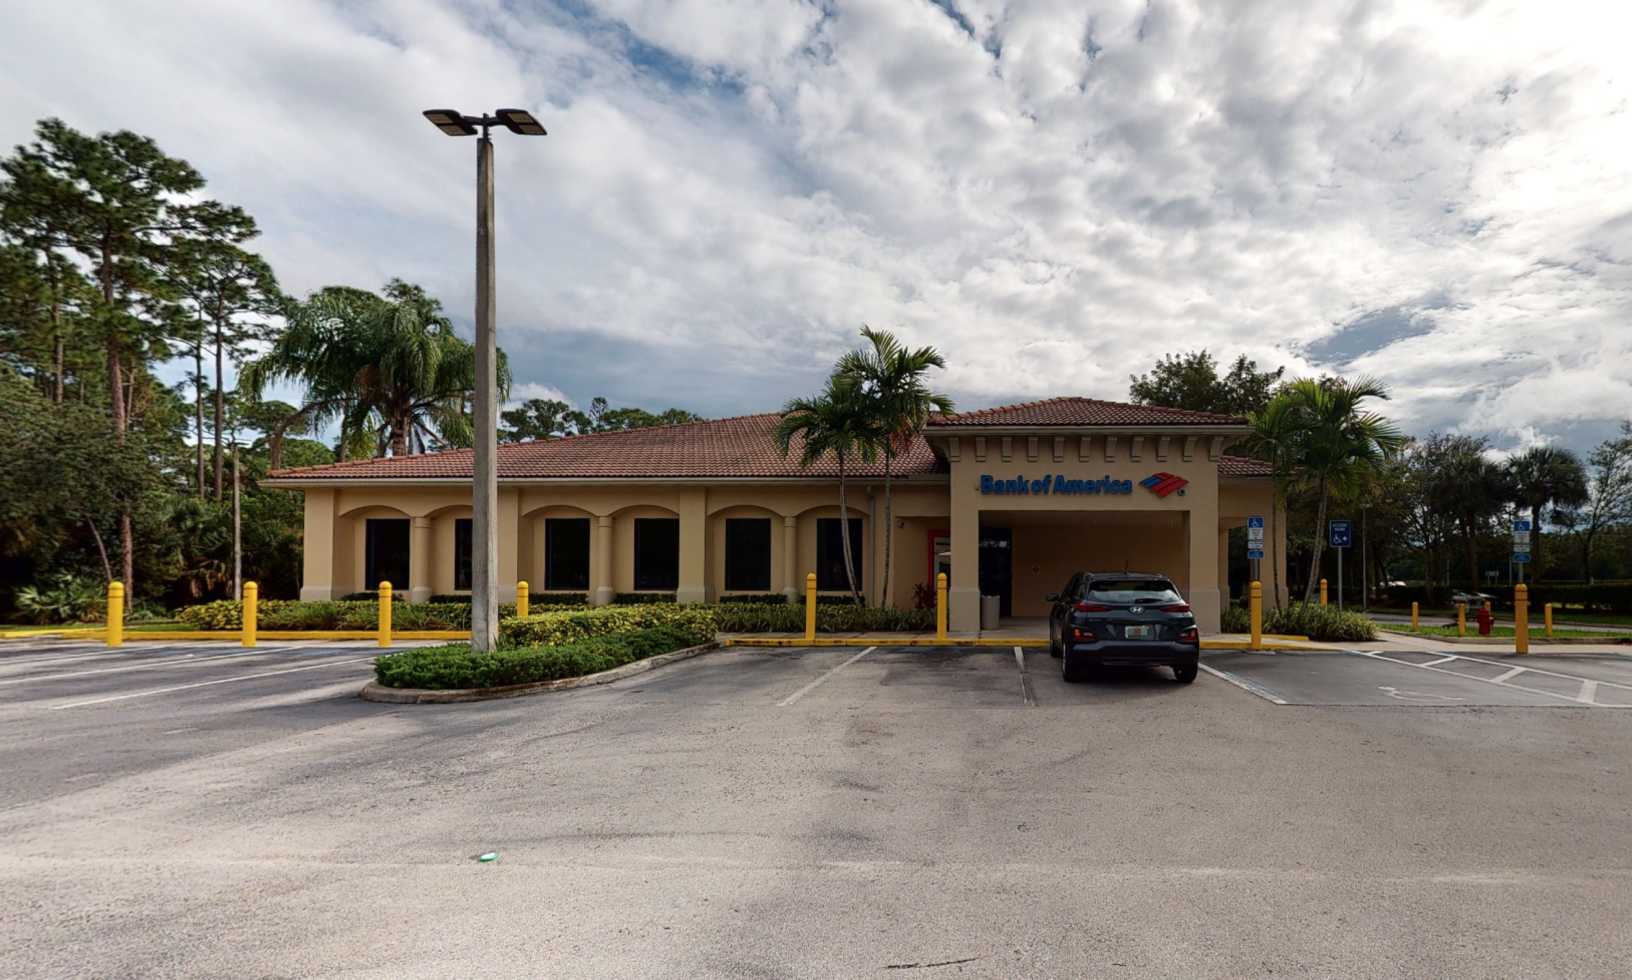 Bank of America financial center with drive-thru ATM and teller | 4364 S State Road 7, Lake Worth, FL 33449